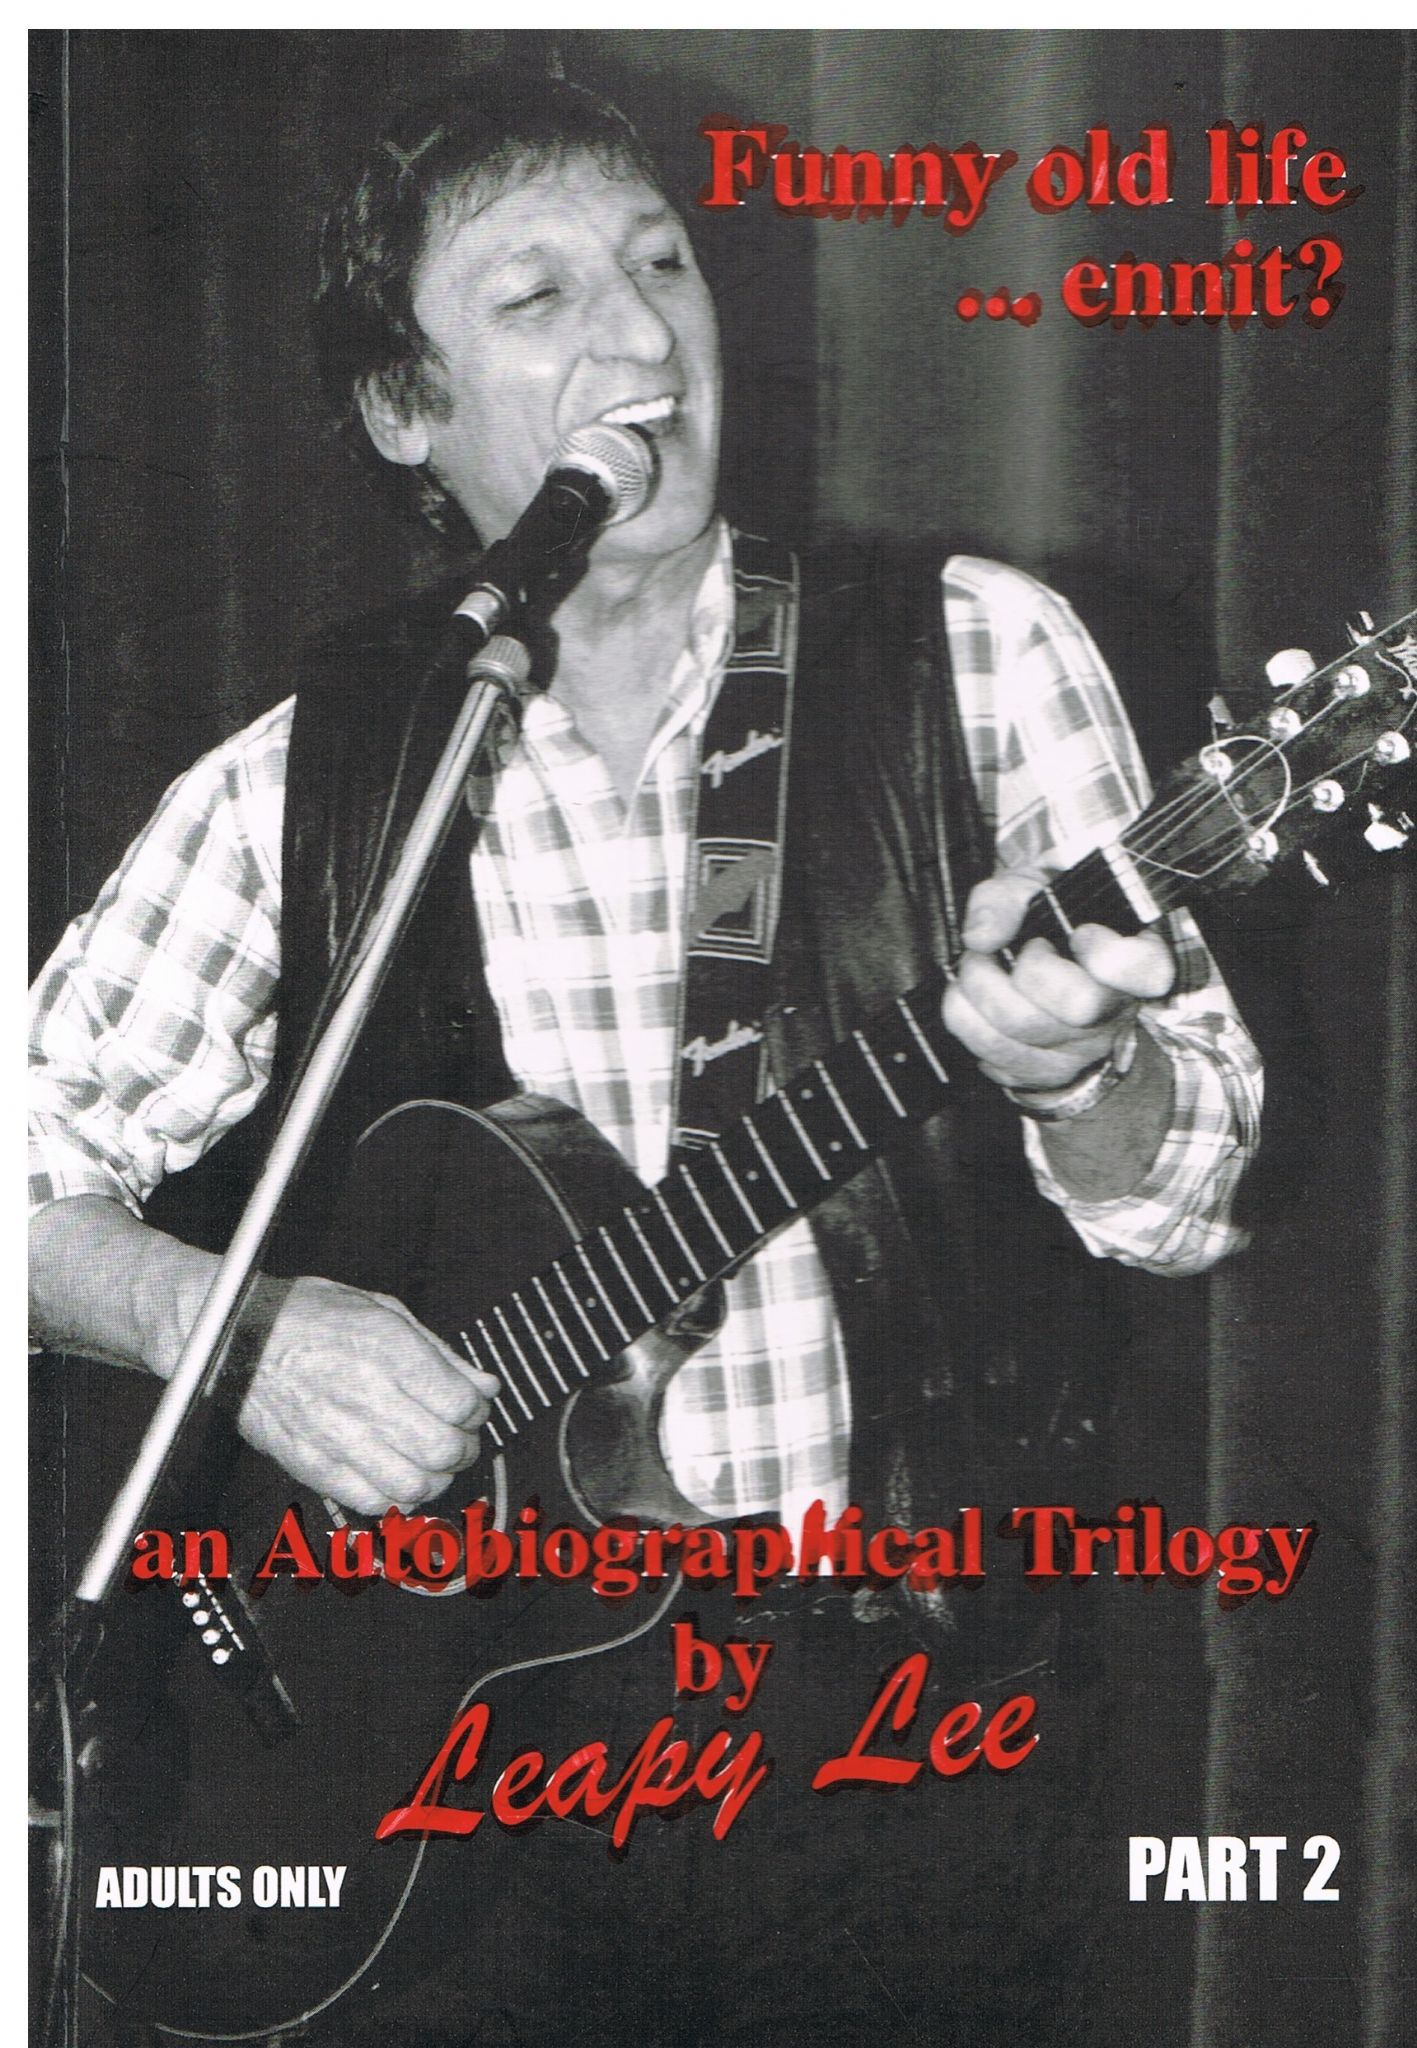 Leapy Lee: An Autobiographical Trilogy Part 2 Funny Old Life Ennit? (signed  copy)